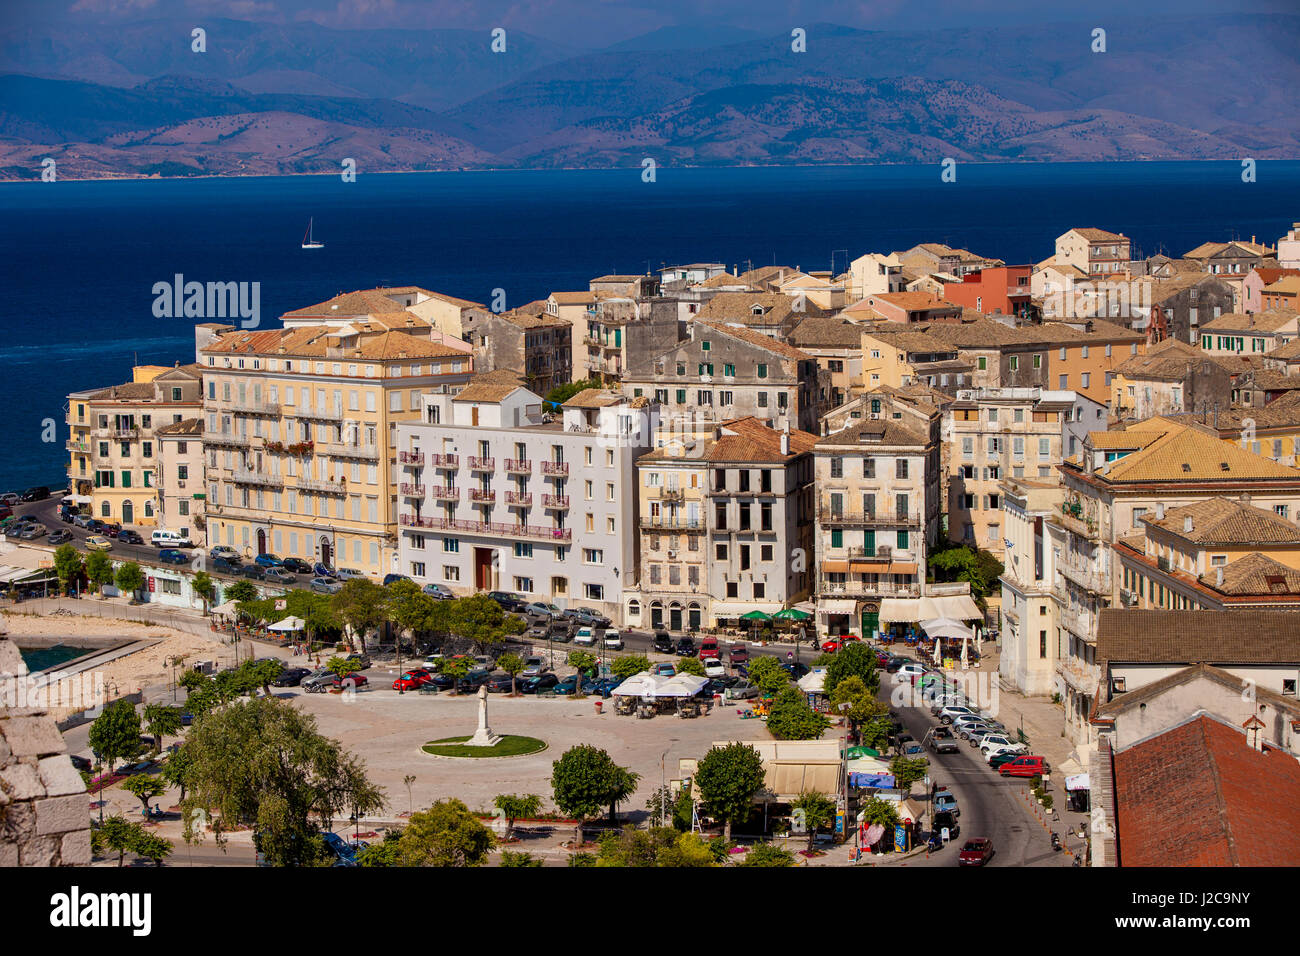 View overlooking Town Square and Buildings of Corfu Town (Kerkyra) on the Ionian Island of Cofu, Greece - Stock Image